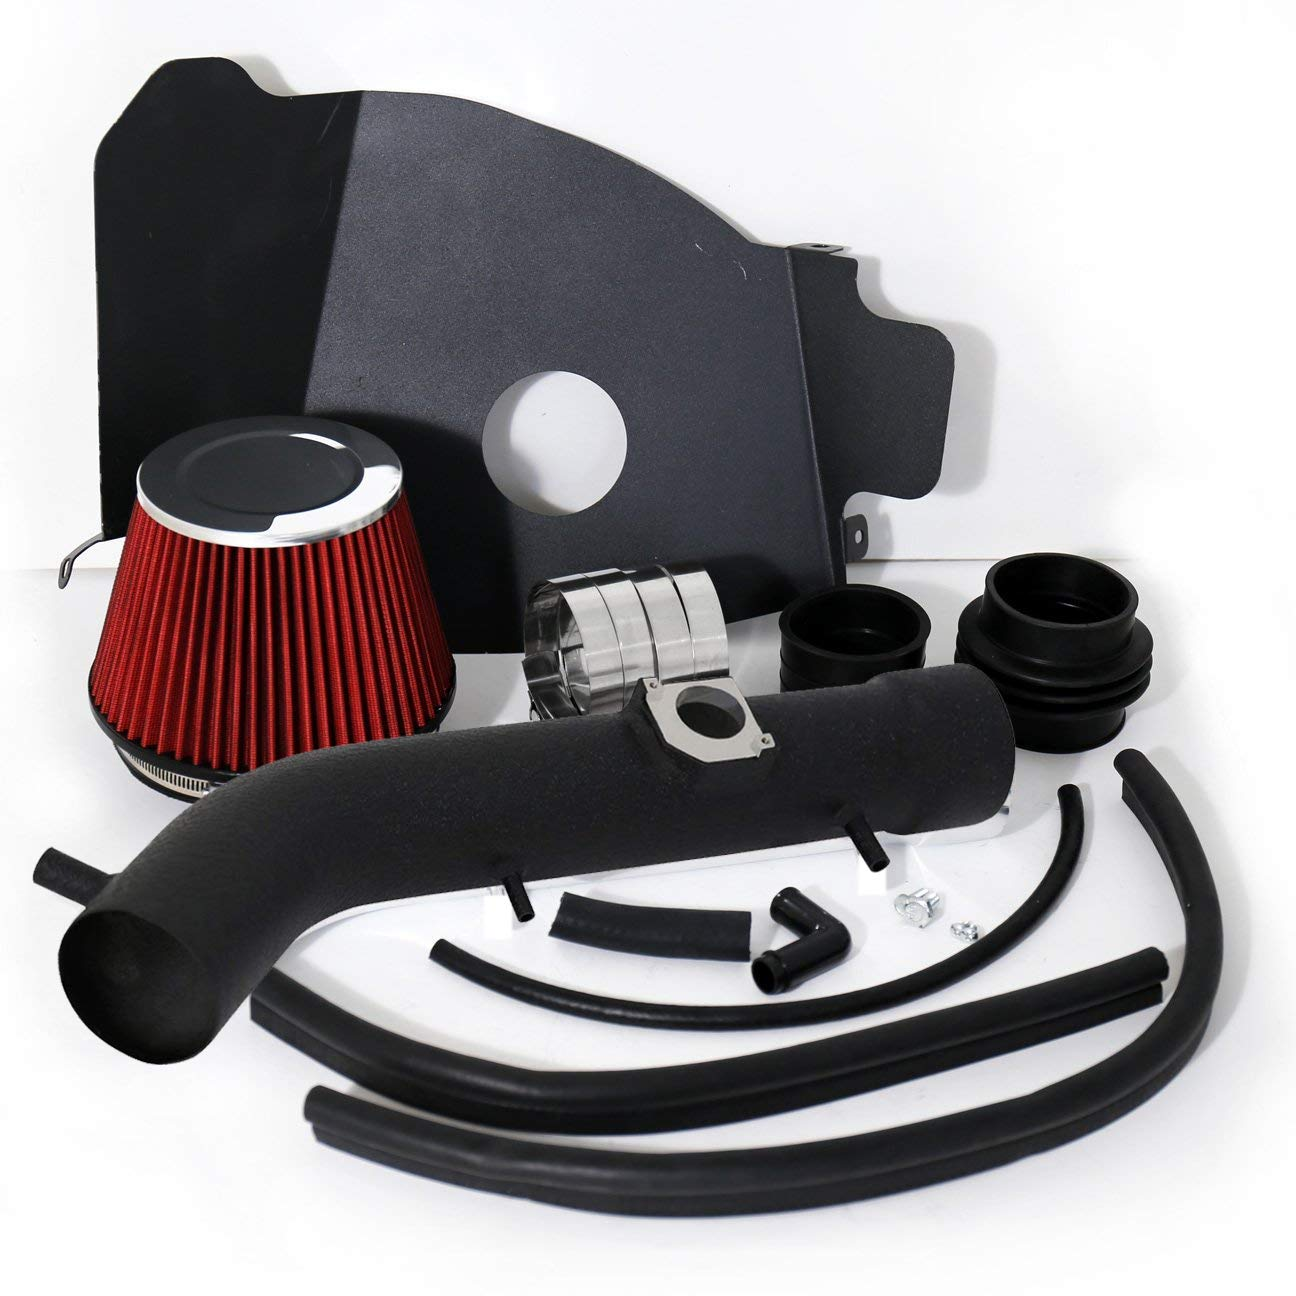 3.4L V6 Engine Only 3.4L V6 Engine Only Aluminum High Flow Air Intake Kit Black Heat Shield Pipe with Red Filter For 1999-2004 Toyota Tacoma //1999-2002 Toyota 4Runner